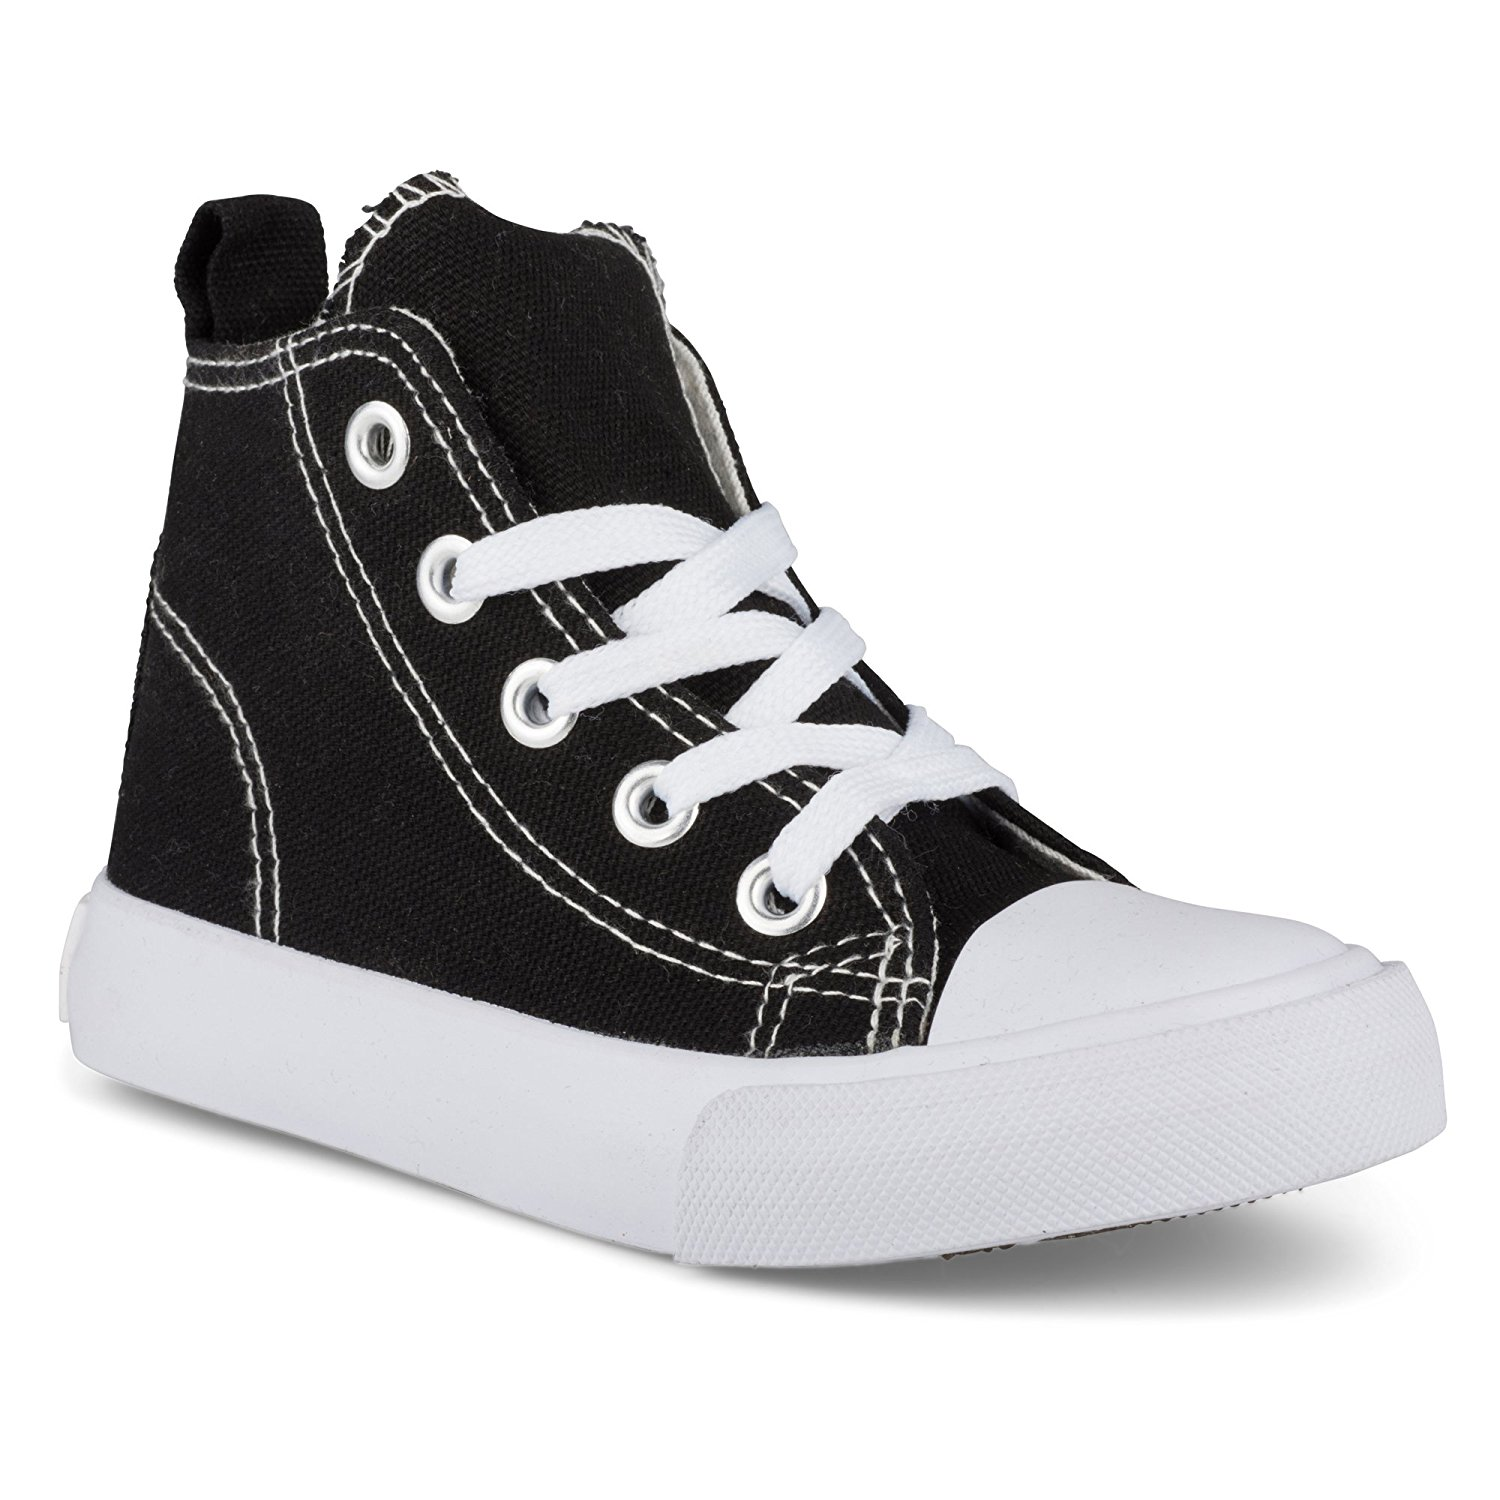 Zoogs Fashion High-Top Canvas Sneakers - for Girls Boys Youth, Toddlers & Kids - Black & White Sneakers - Breathable Upper Canvas with Rubber Sole - Lace up Running Shoes